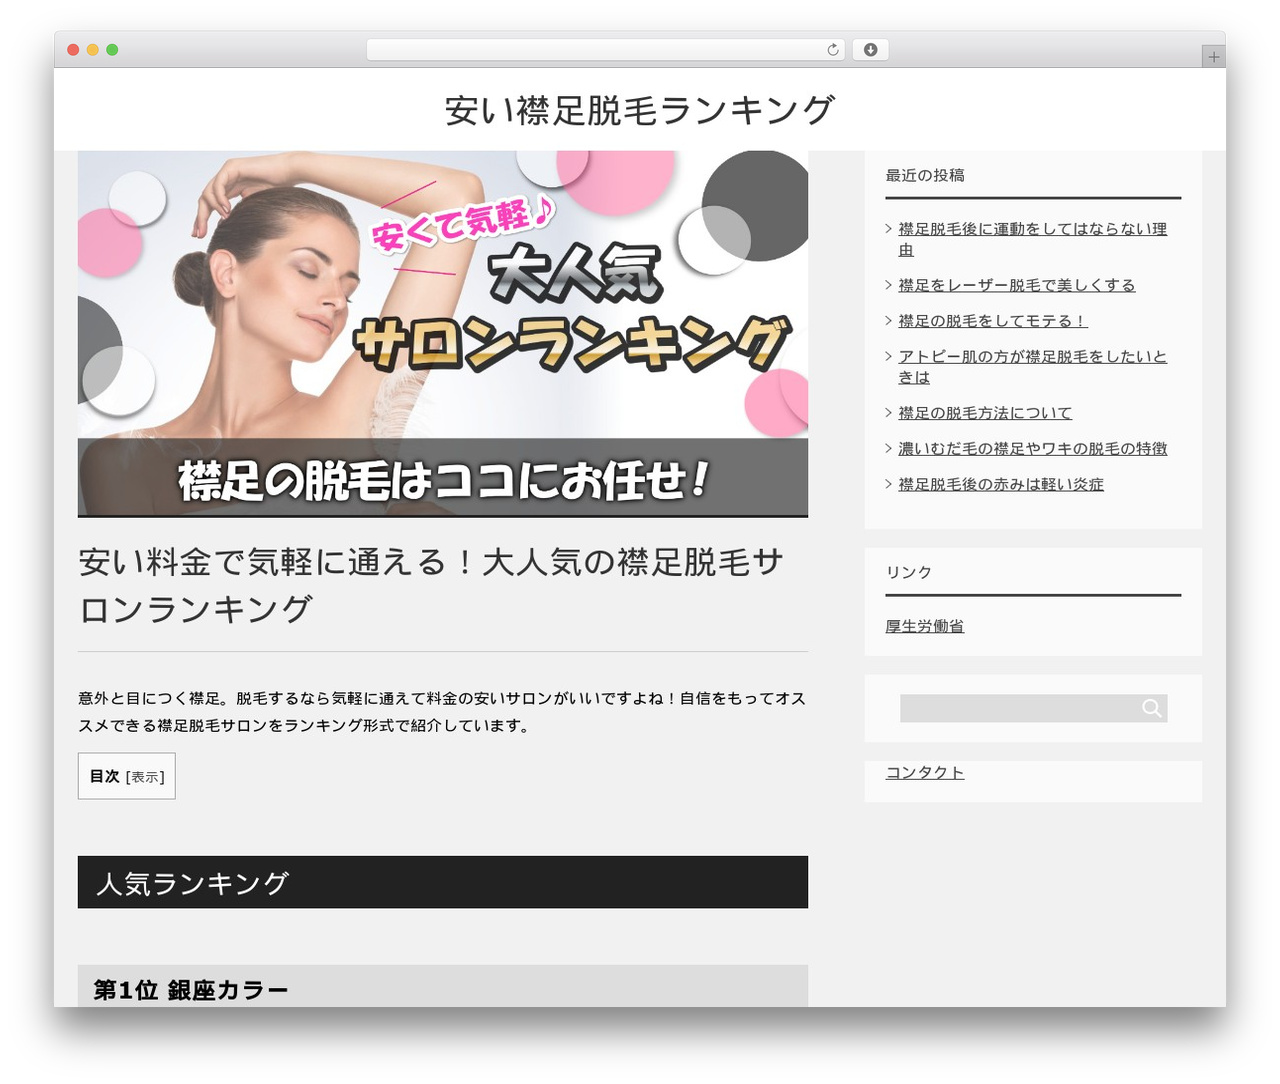 賢威7.0 クール版 WordPress theme - xn--n8jt61kdikh9telj7pg.net